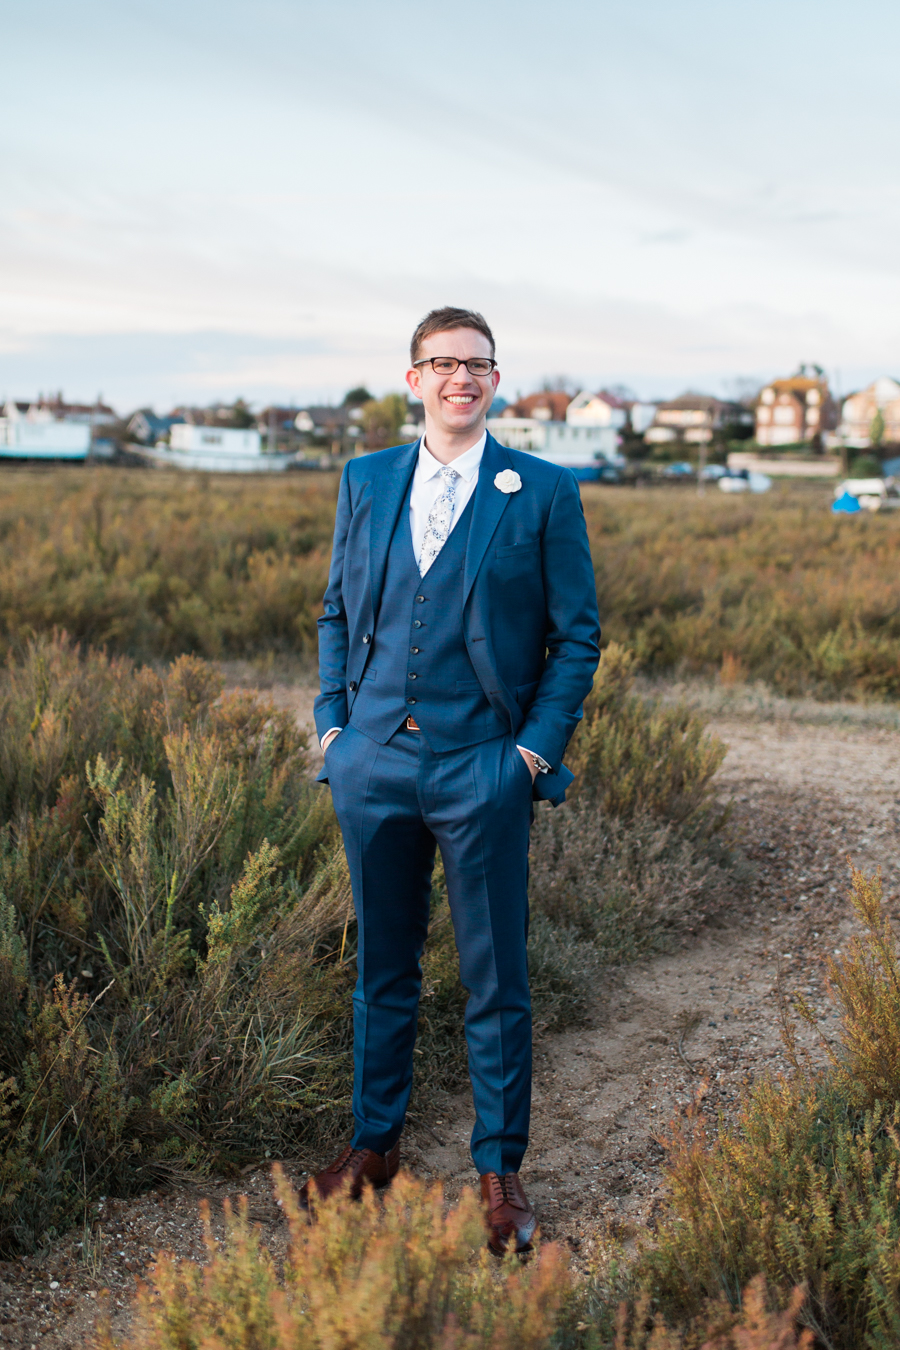 mersea-island-essex-wedding-photos-gemma-giorgio-photography-86